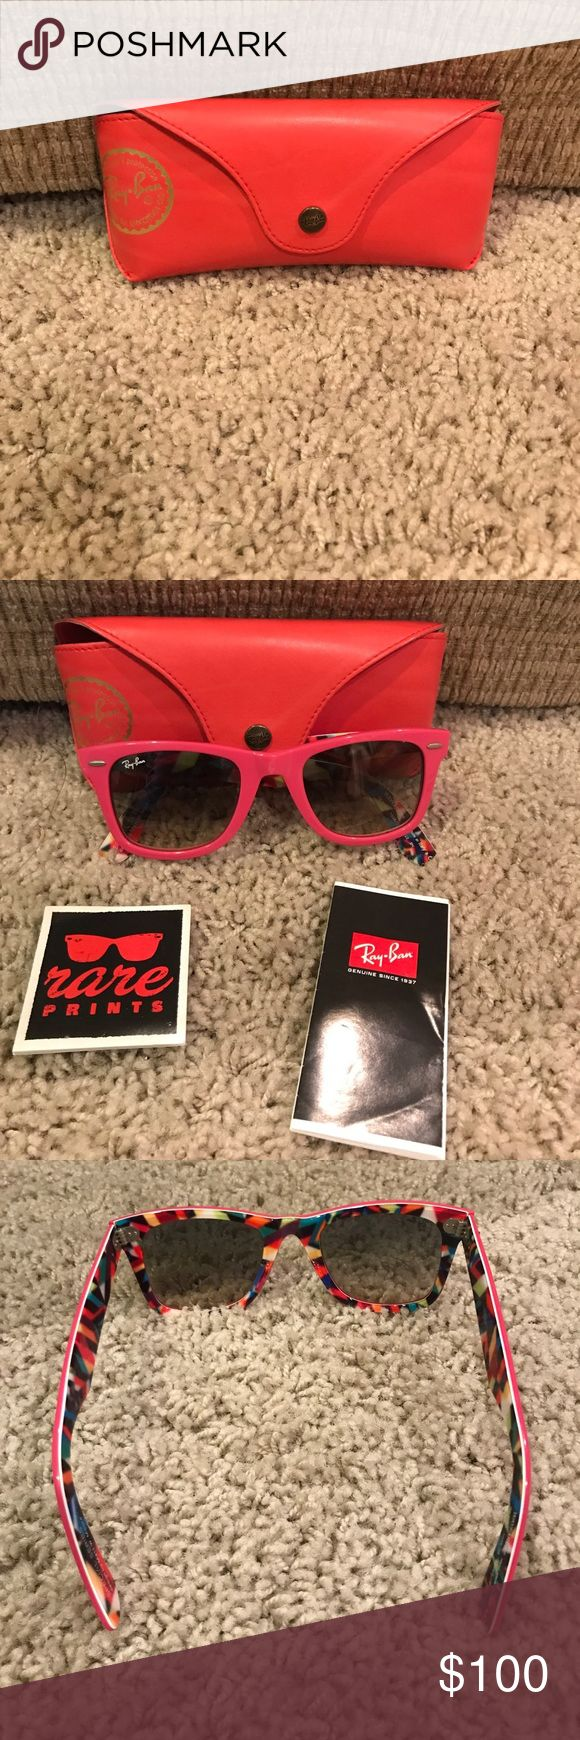 Ray Ban Wayfarer ONE OF A KIND- Pink RayBan Wayfarer sunglasses. Only worn Once! Have authentic tags. These have a hand-designed print inside of them. PERFECT sunnies for summer! Ray-Ban Accessories Sunglasses